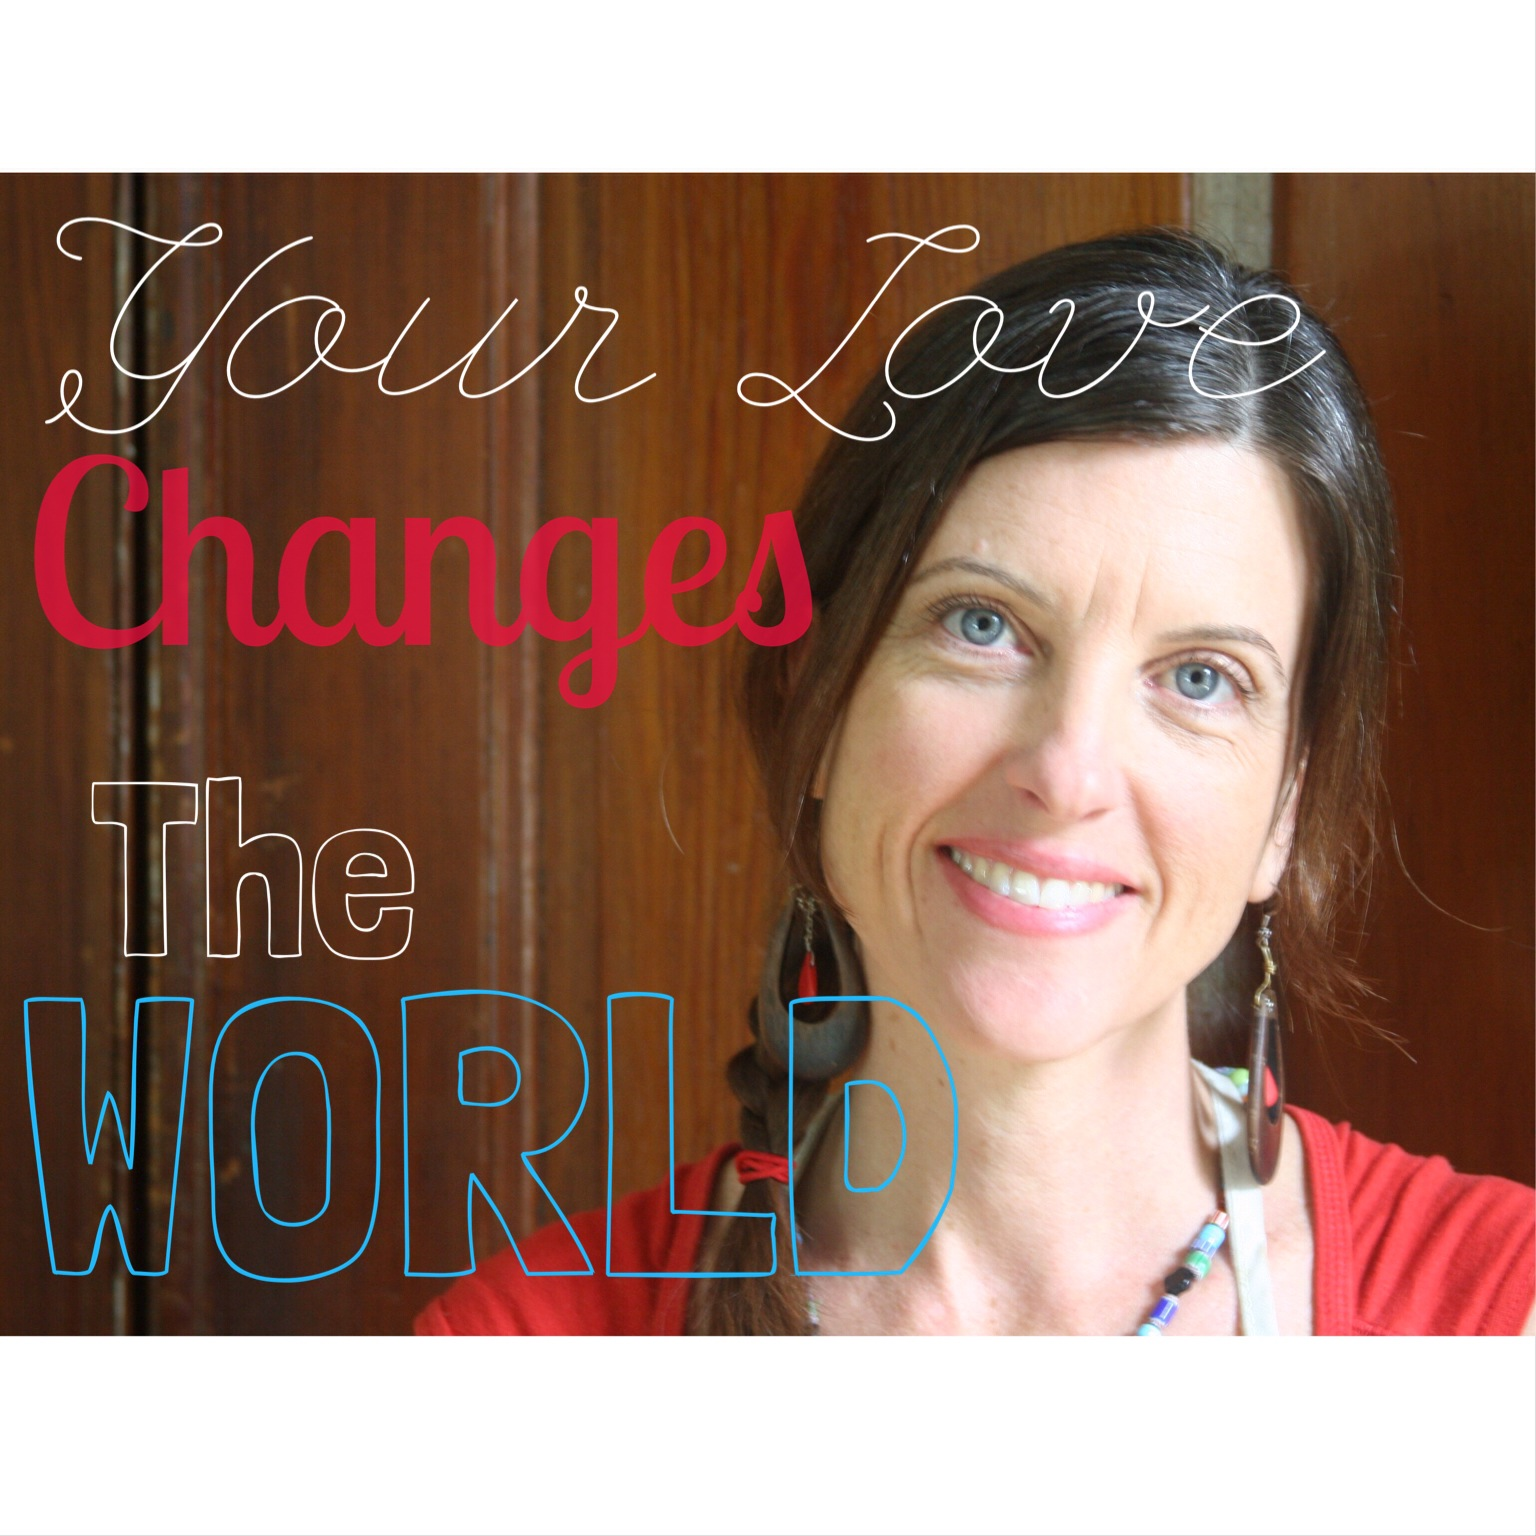 Your love changes the world